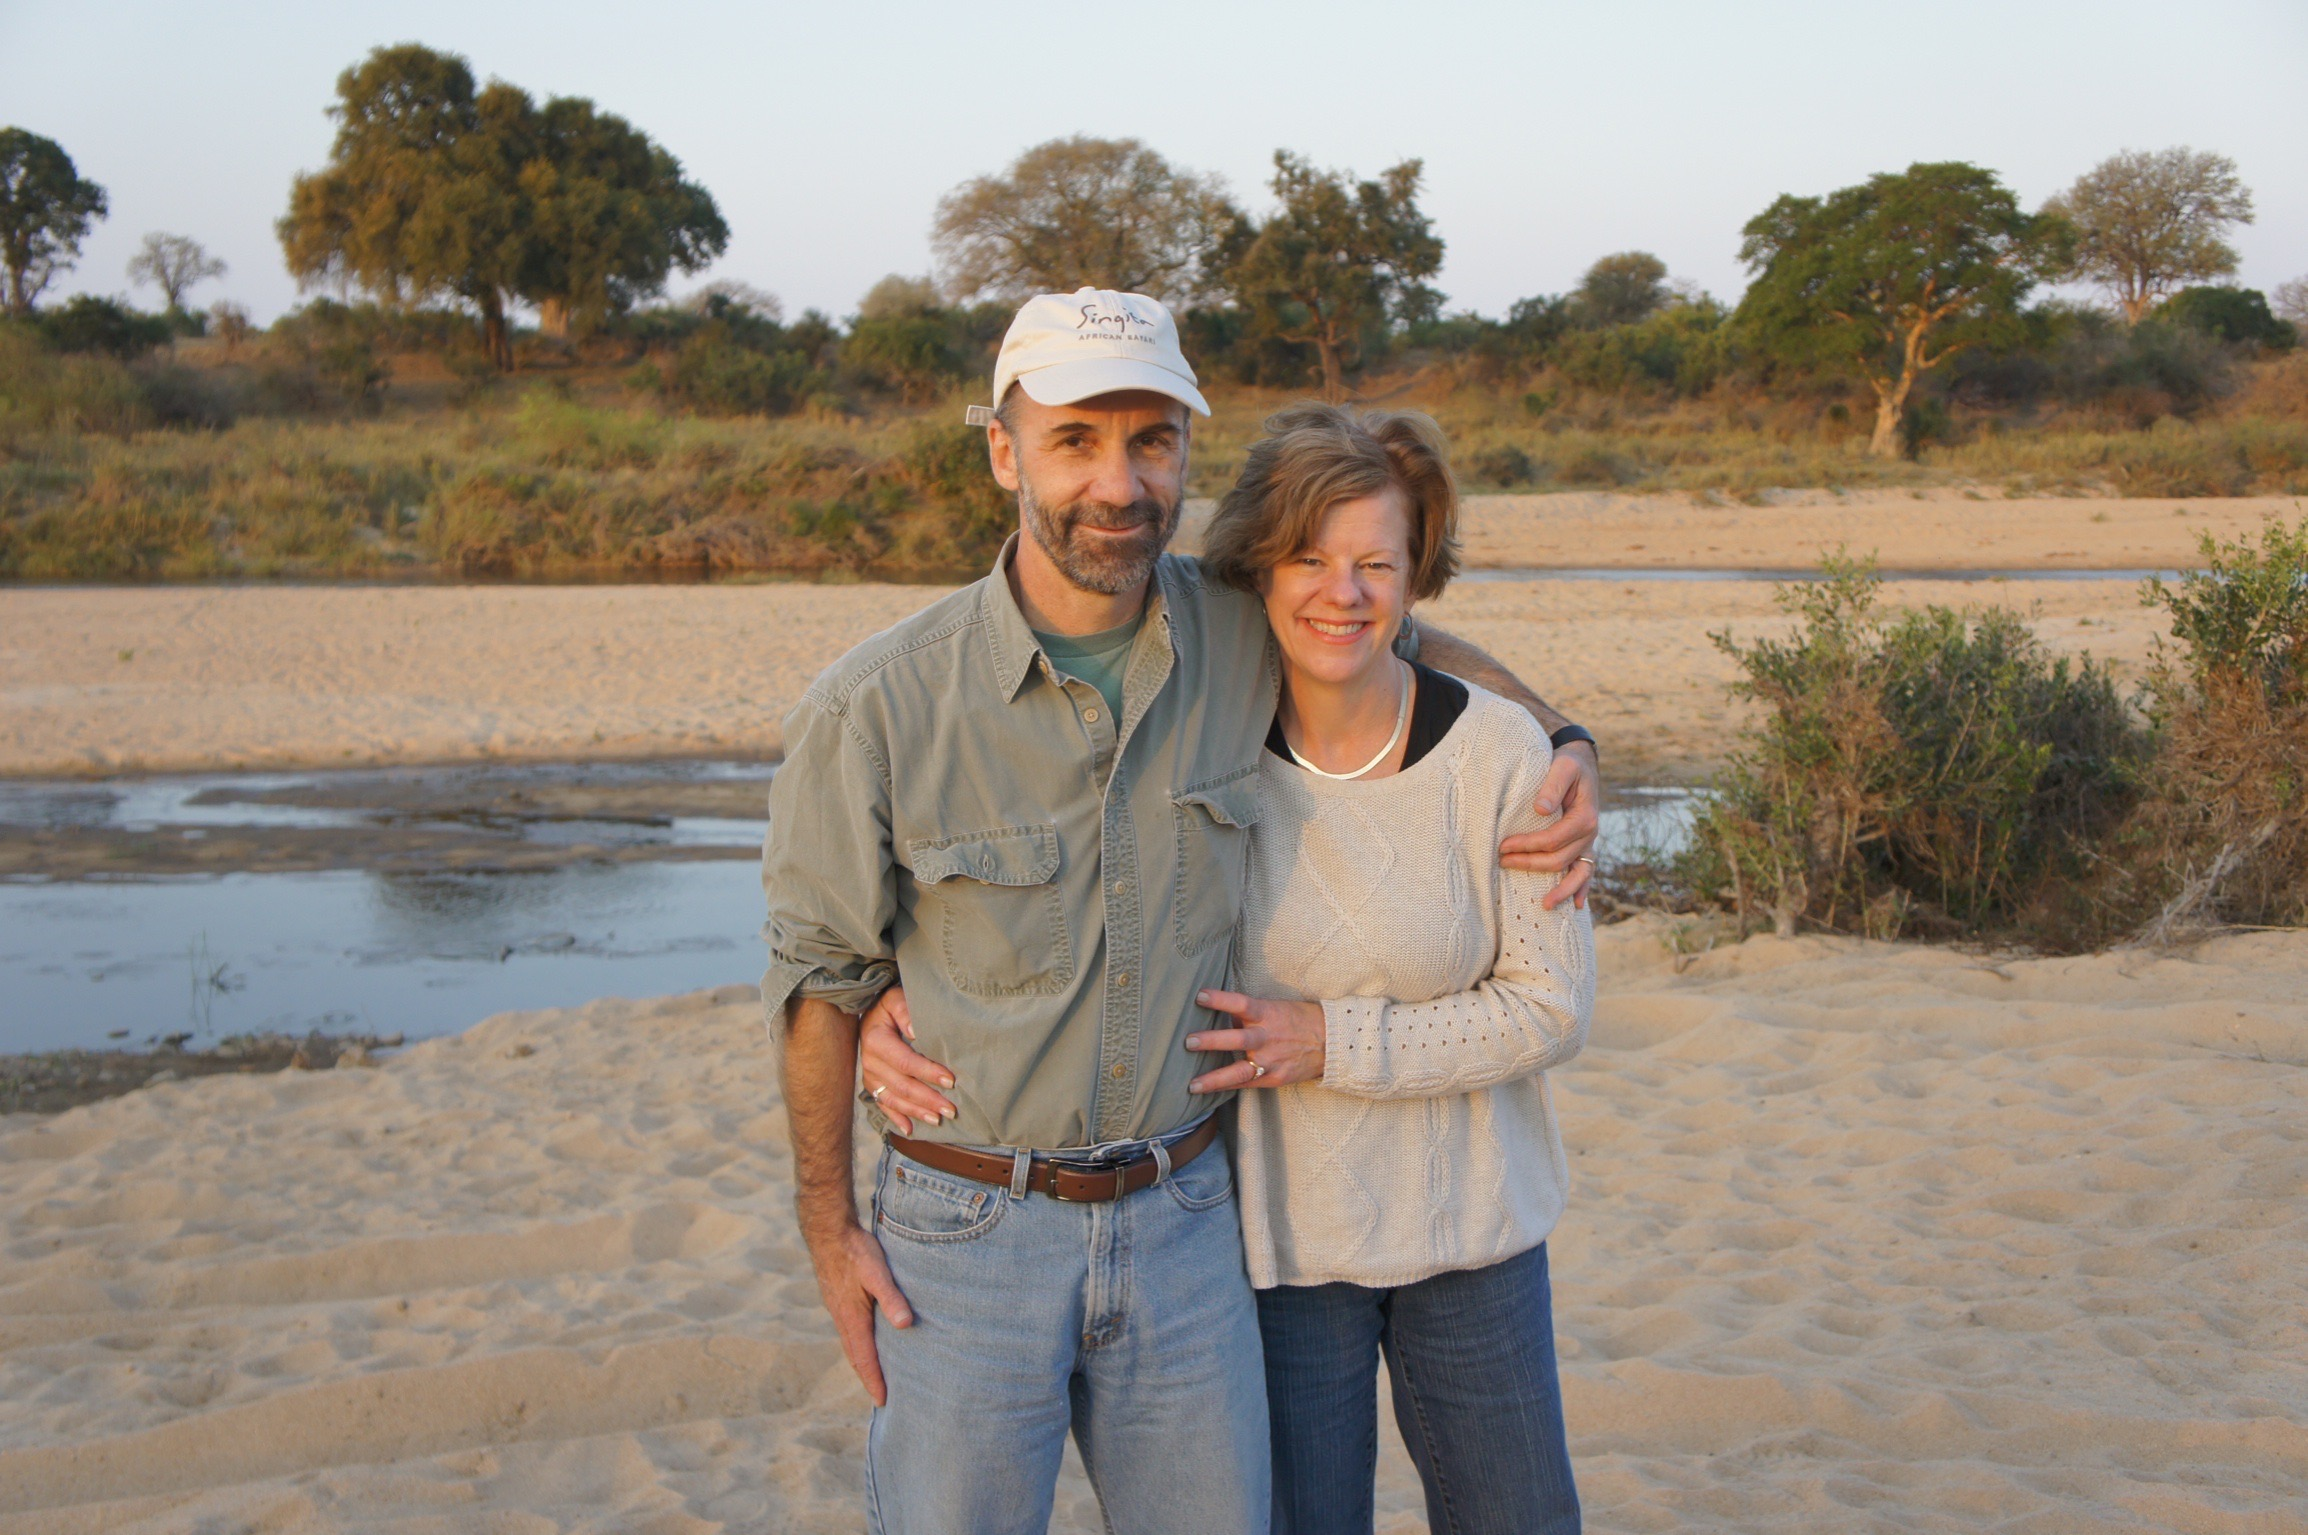 Kathy and Tom in Botswana